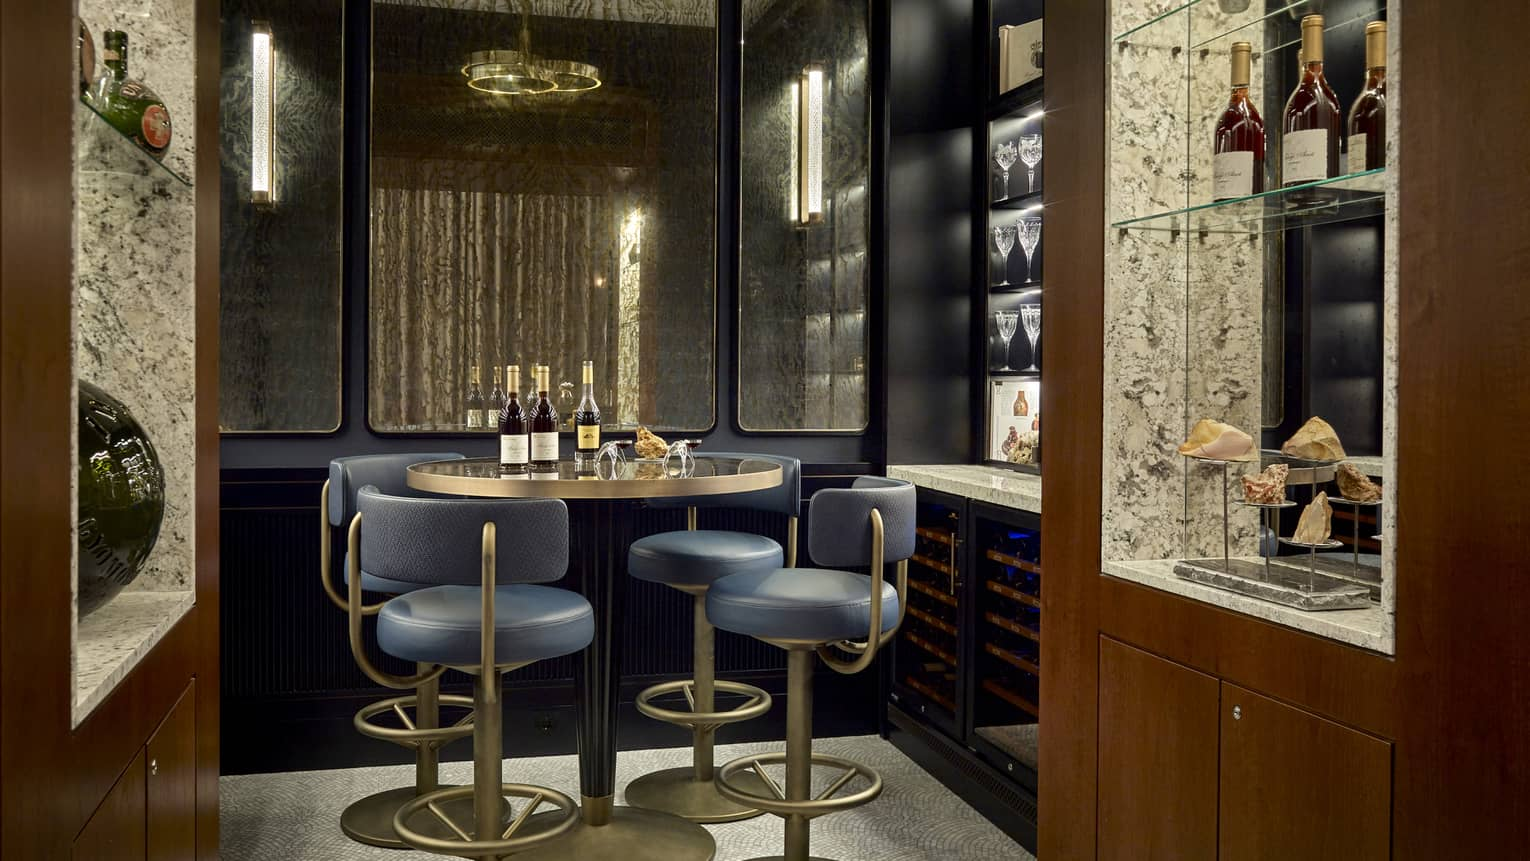 Dark private lounge area with navy and gold barstools at round high-top gold table, wine bottles